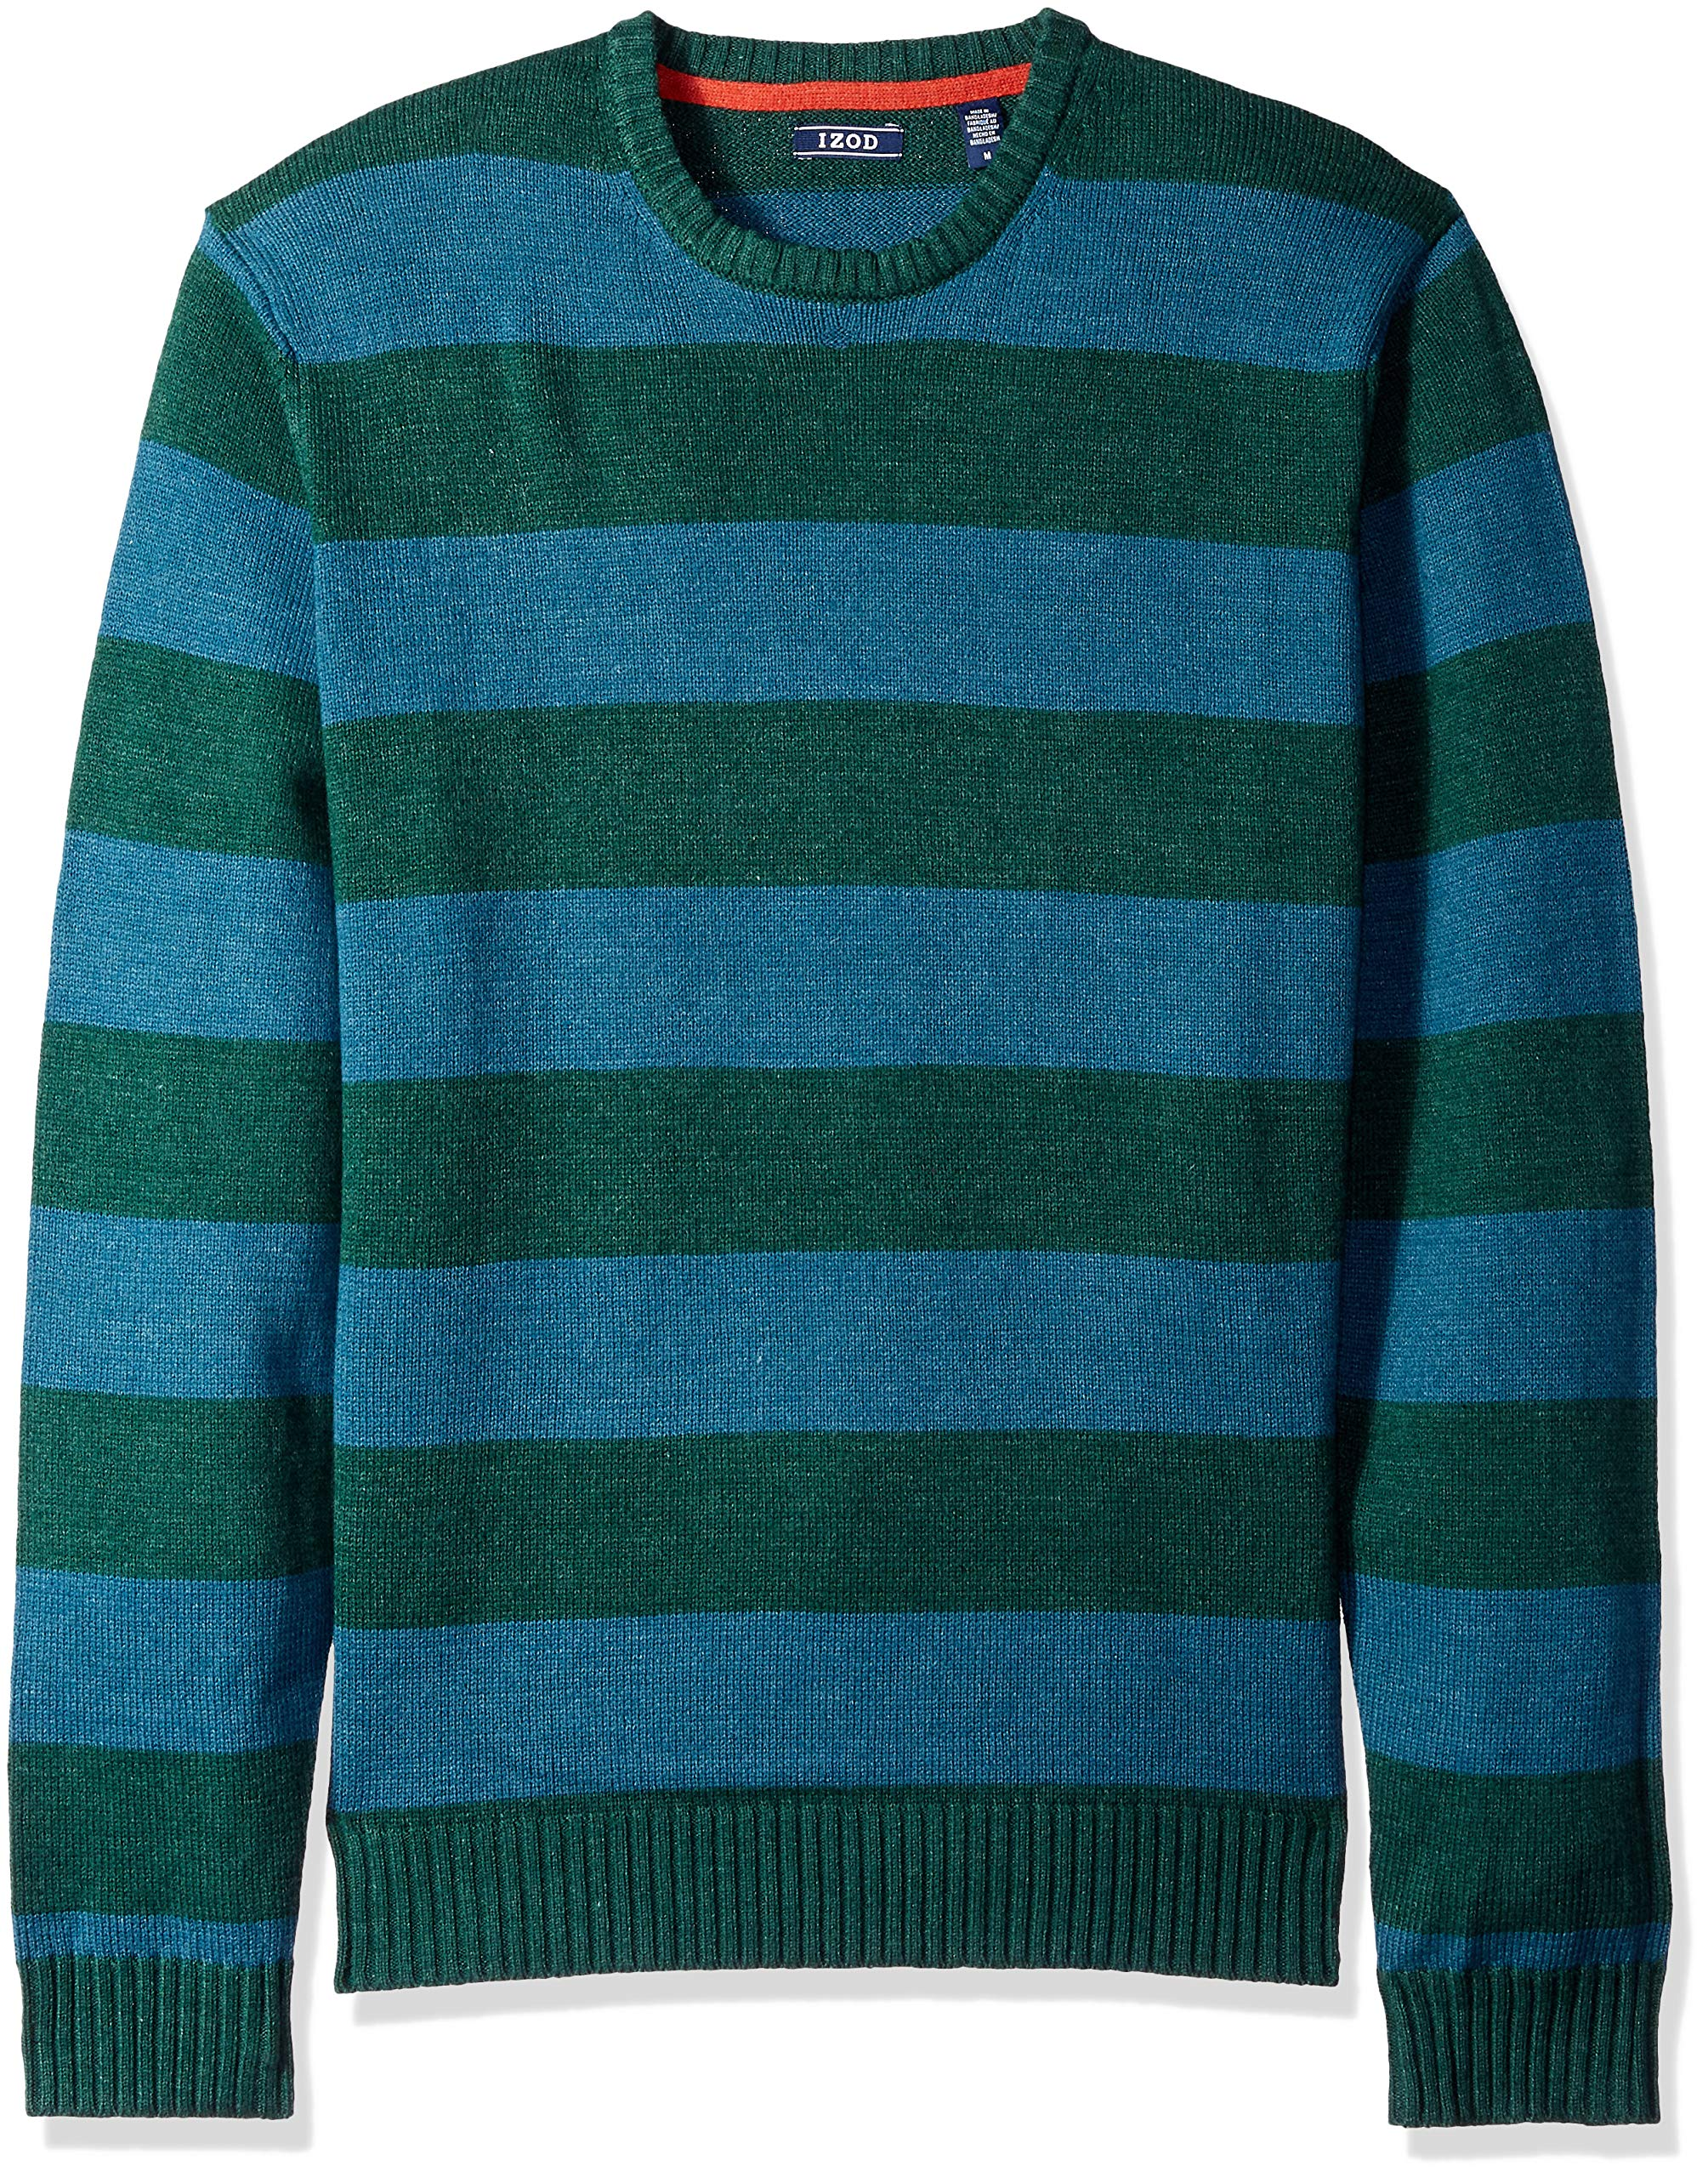 IZOD Men's Fine Gauge Crew Sweater, Rugby Bot Garden, XX-Large